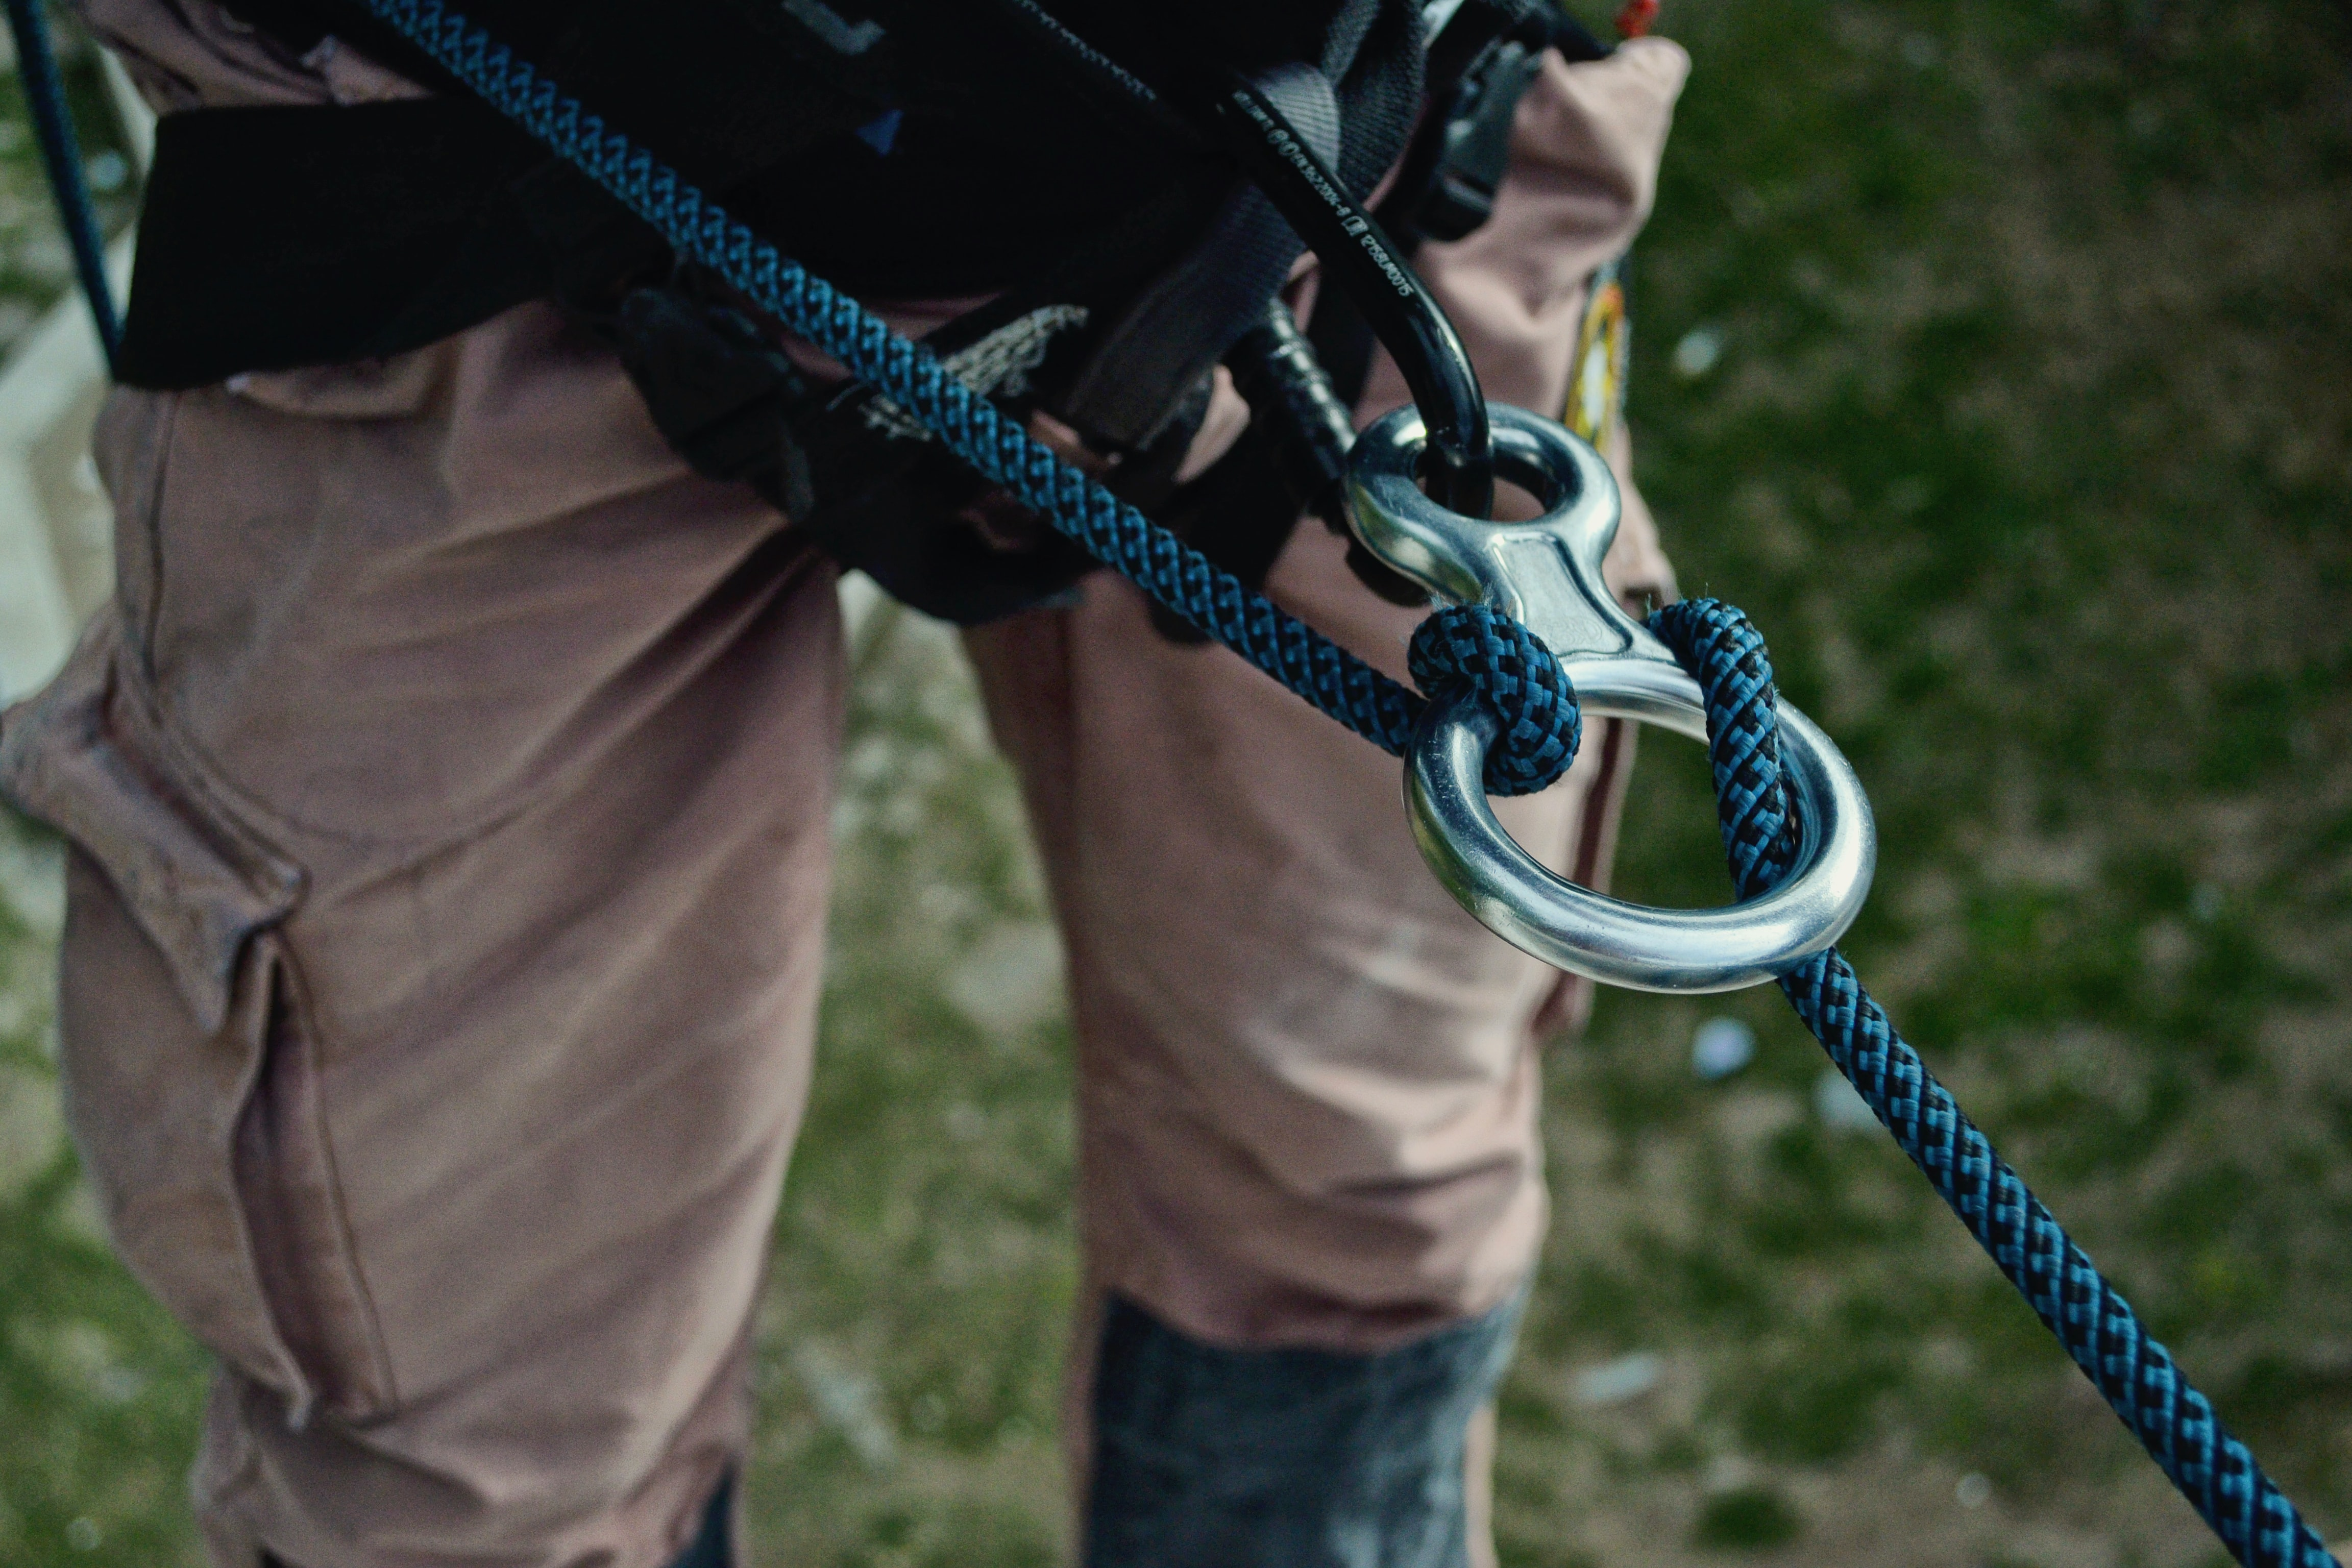 Macro shot of details on a climber's rappel and harness